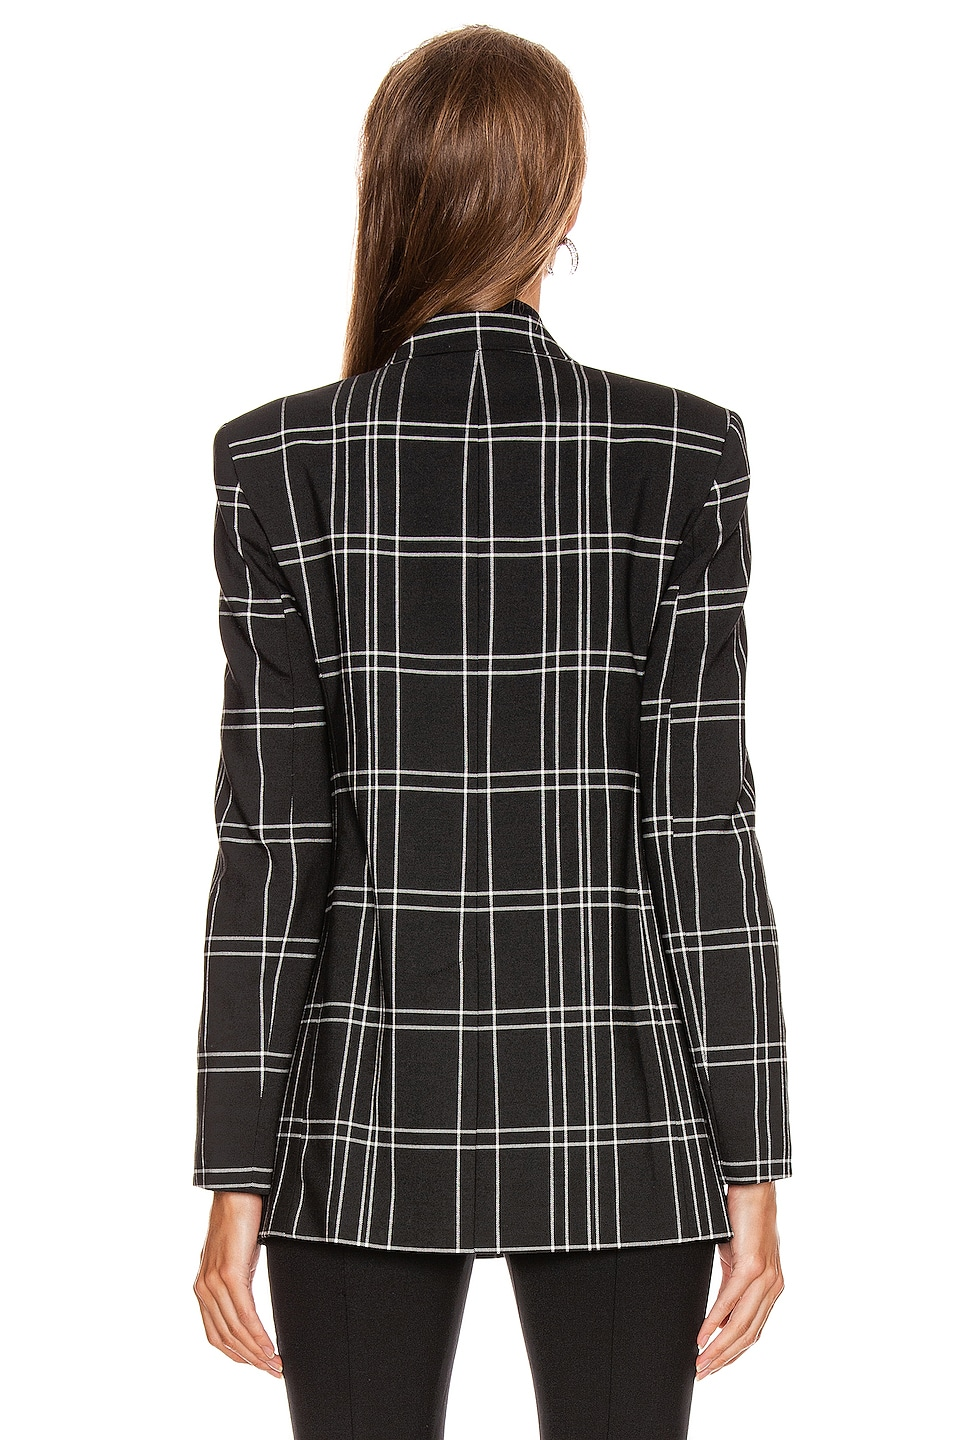 Image 4 of Alexander Wang Peaked Lapel Blazer with Leather Sleeves in Black & White Windowpane